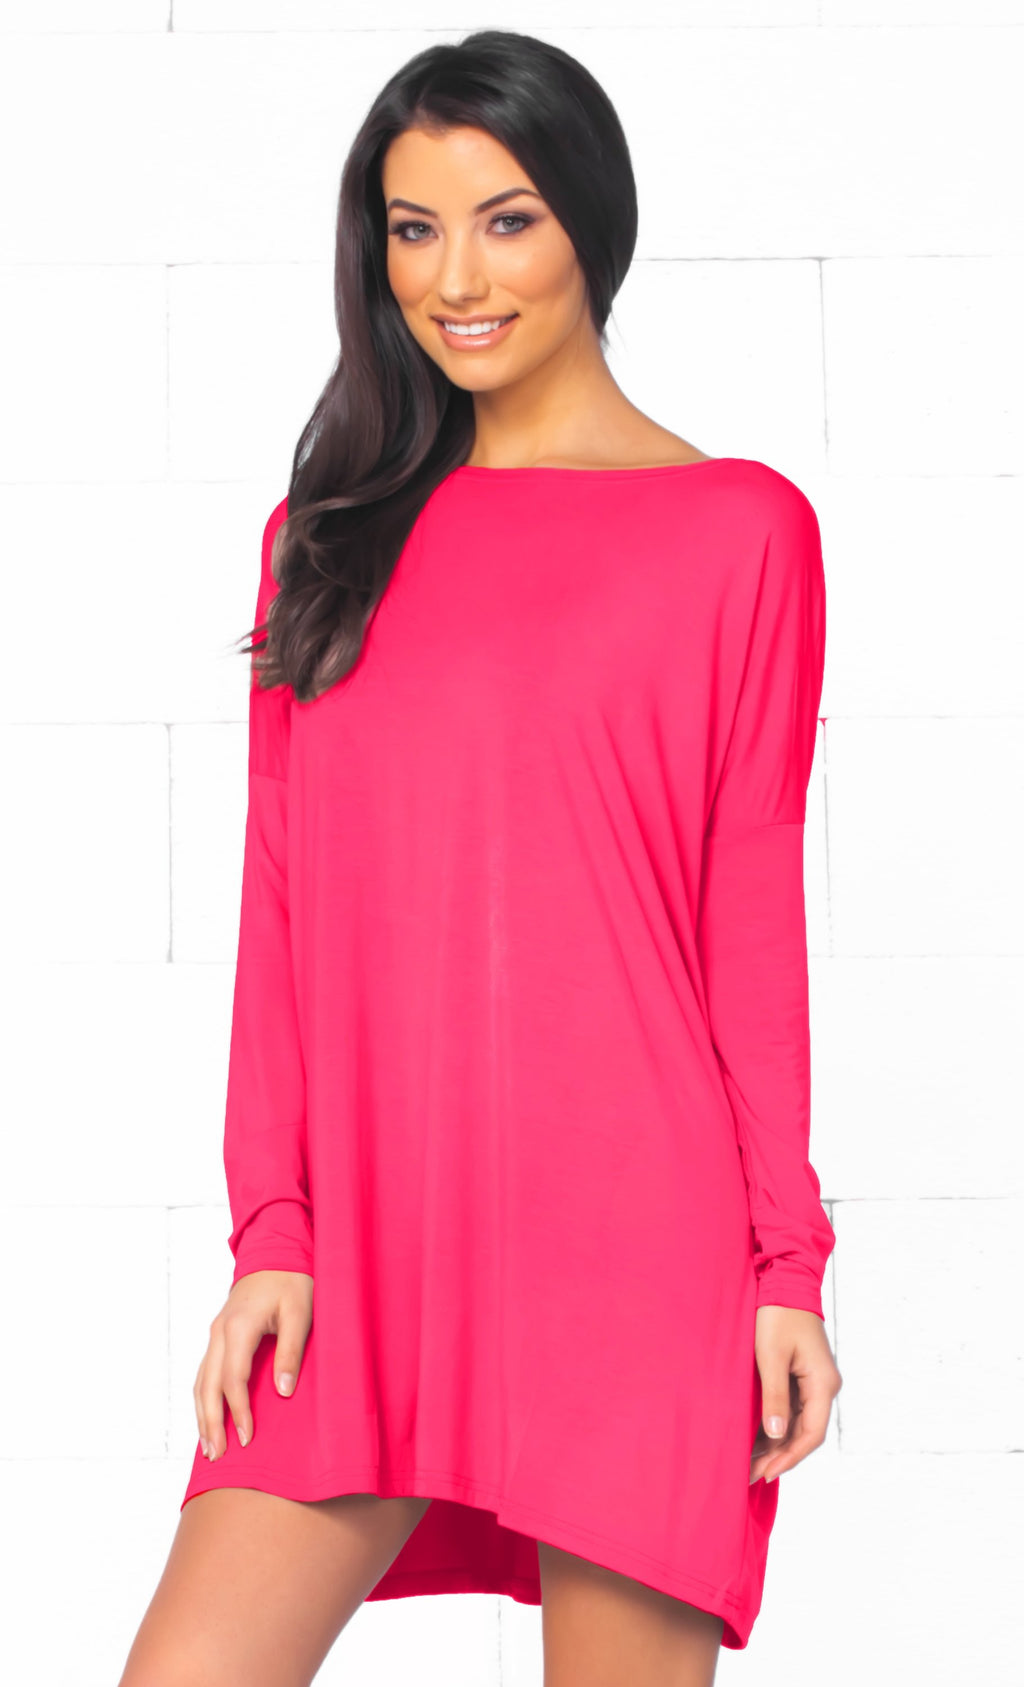 Piko 1988 Fuchsia Pink Long Sleeve Scoop Neck Piko Bamboo Oversized Basic Tunic Tee Shirt Mini Dress